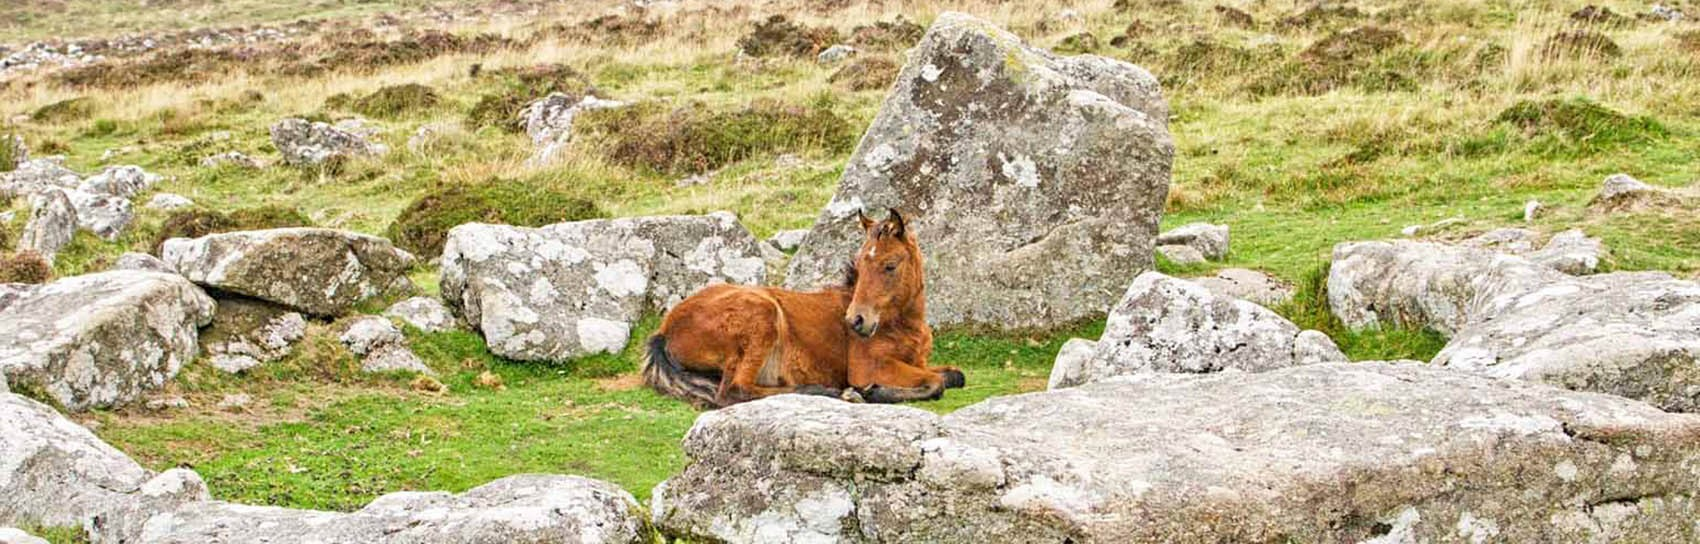 A Dartmoor Pony in a Bronze Age hut at Grimspound. Photograph by ALEX GRAEME